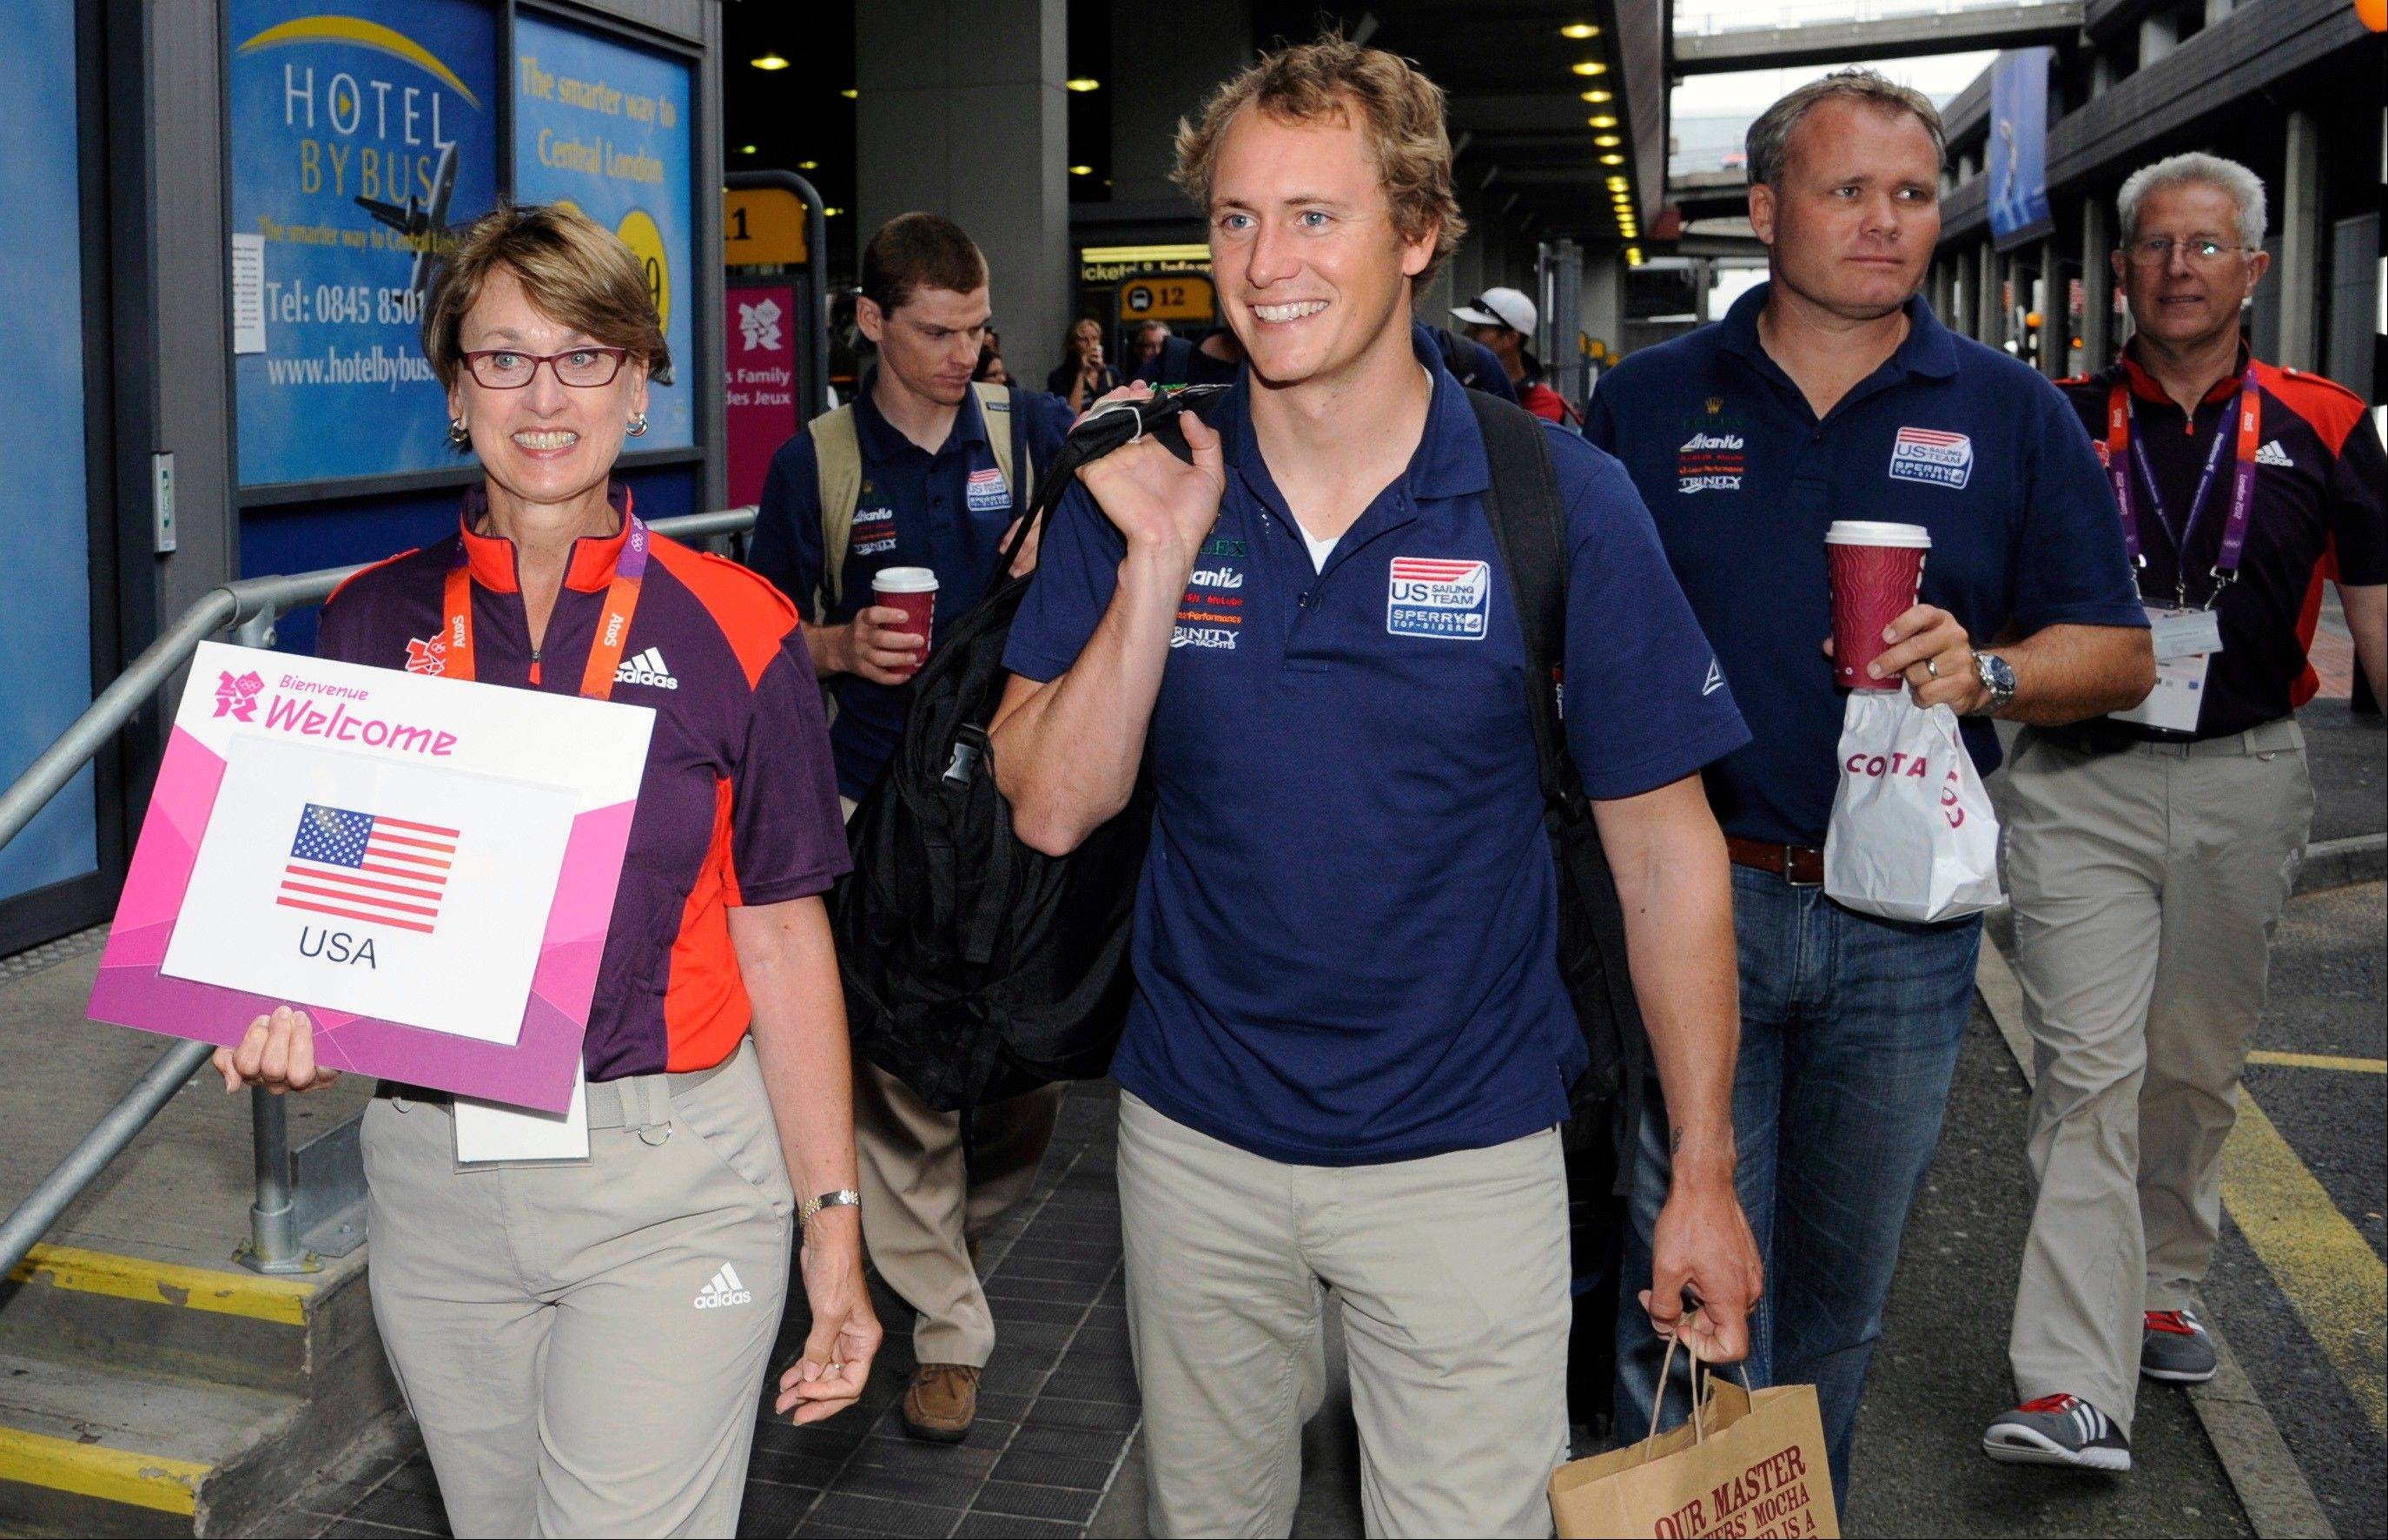 Members of the U.S. Olympic sailing team are escorted following their arrival Monday at Heathrow Airport in London, where arriving athletes added to a record number of passengers. The Games begin July 27 and run through Aug. 12.